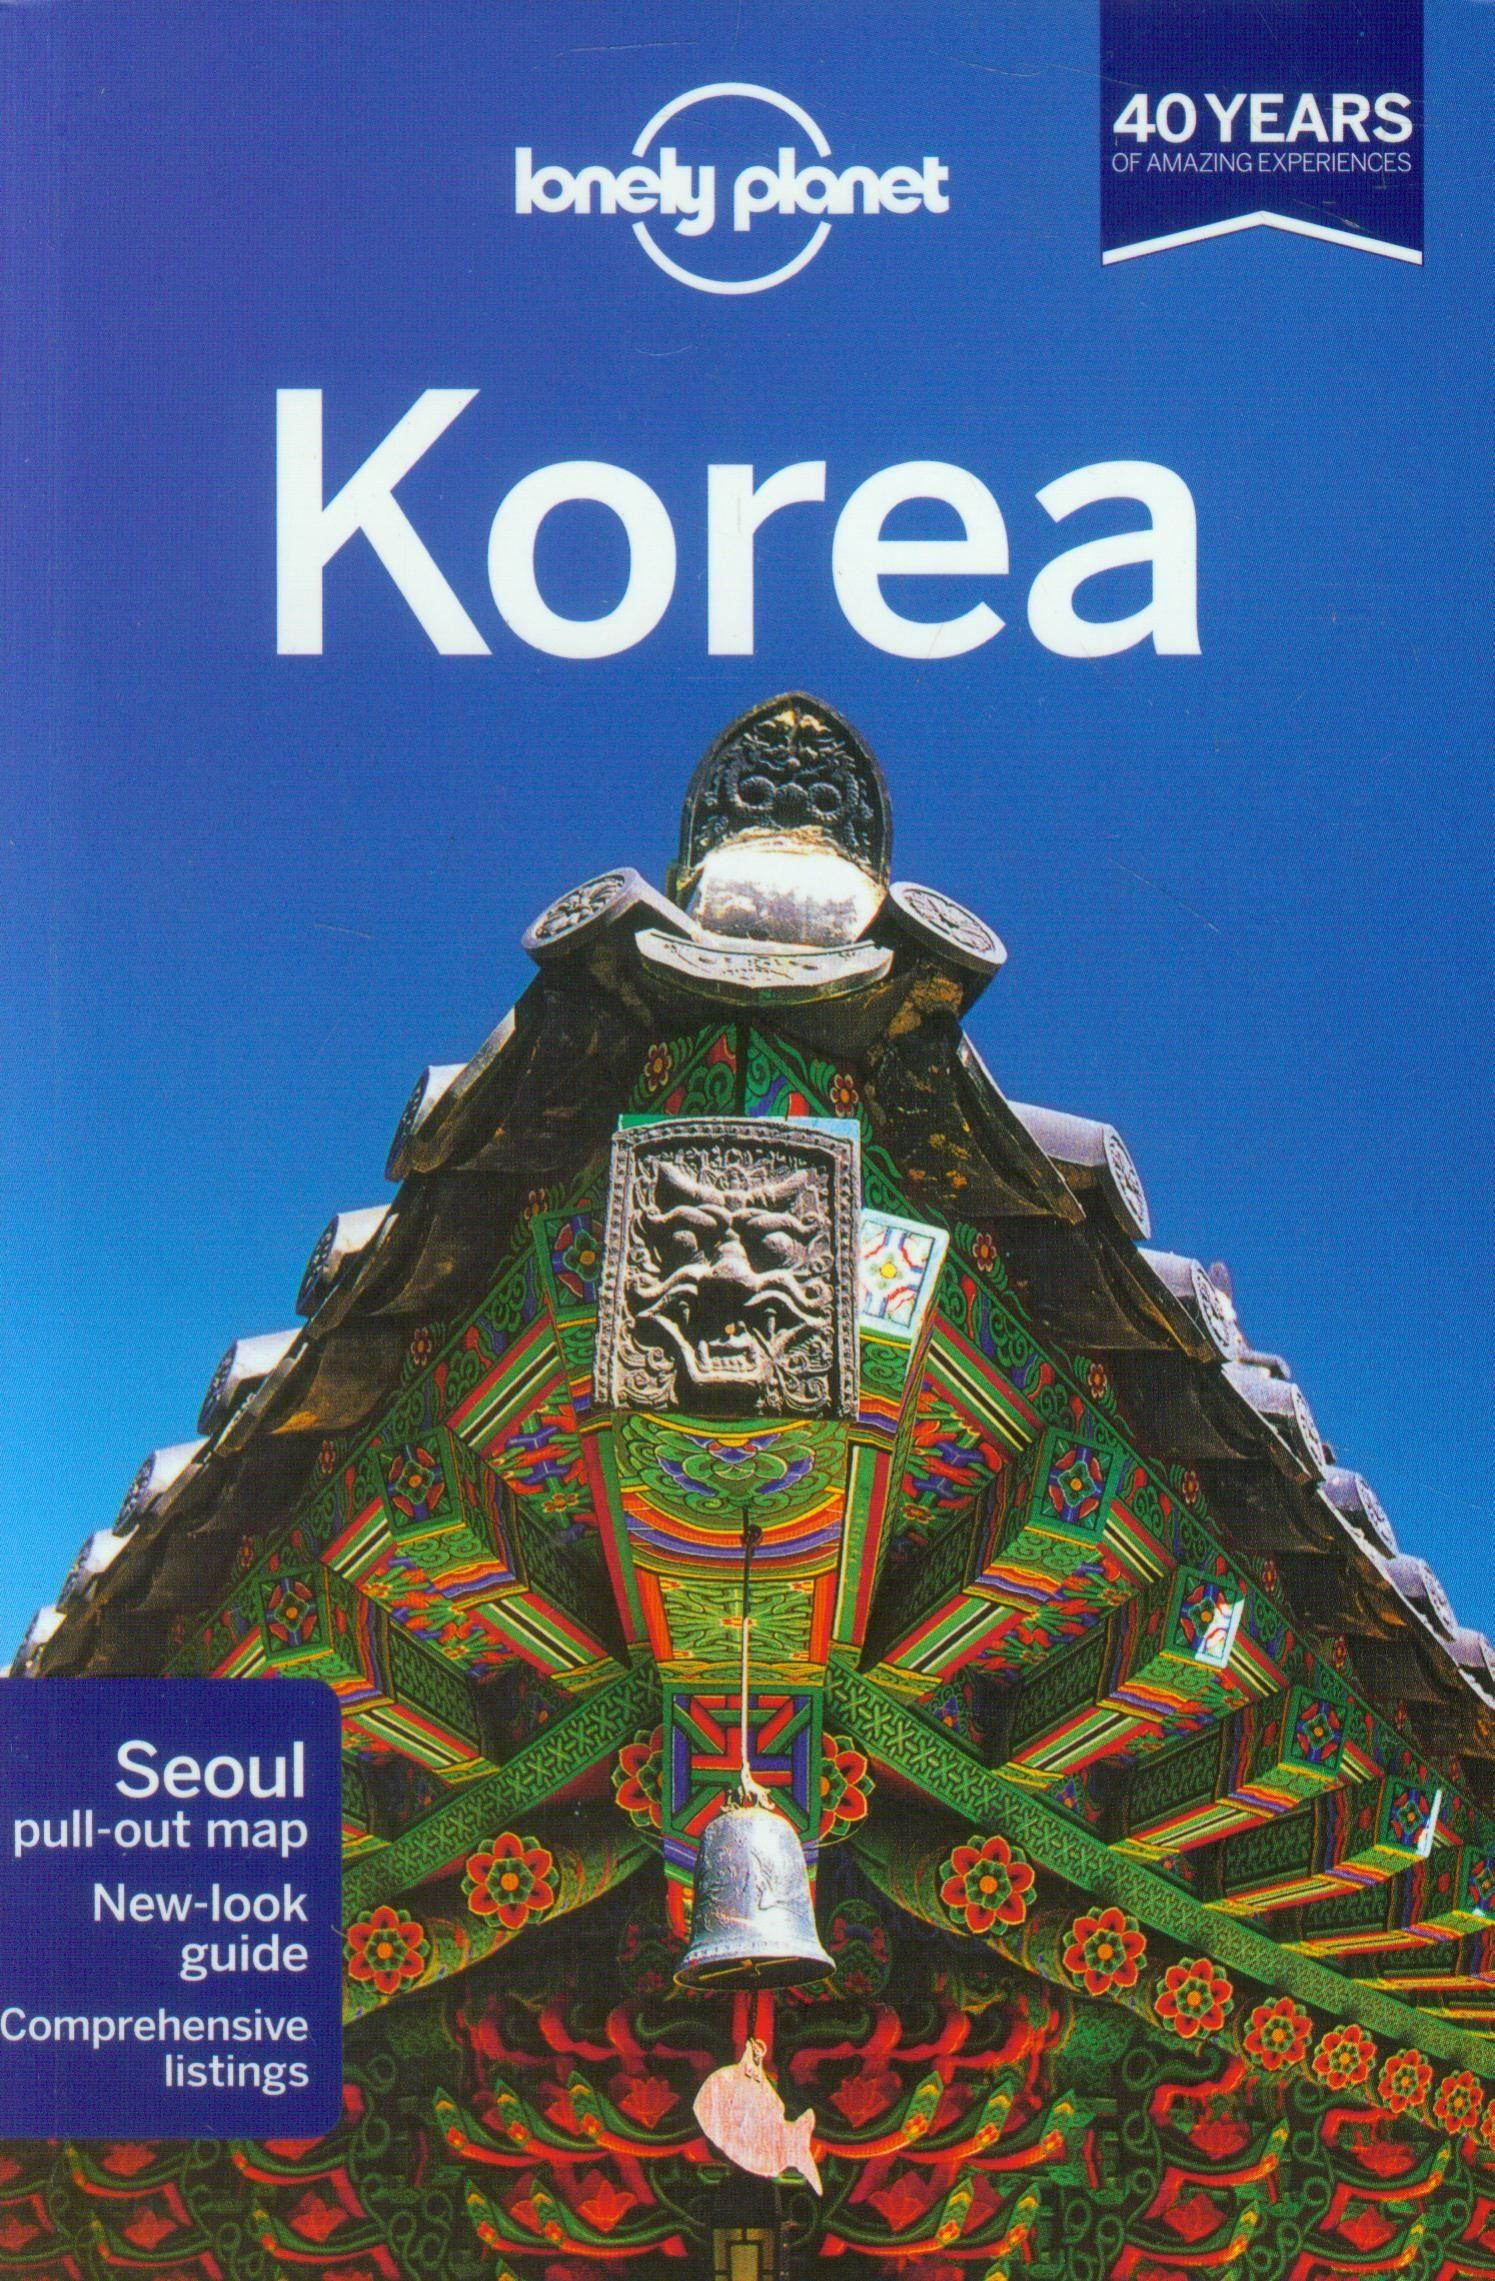 Lonely Planet Korea (Travel Guide) Paperback – February 1, 2013